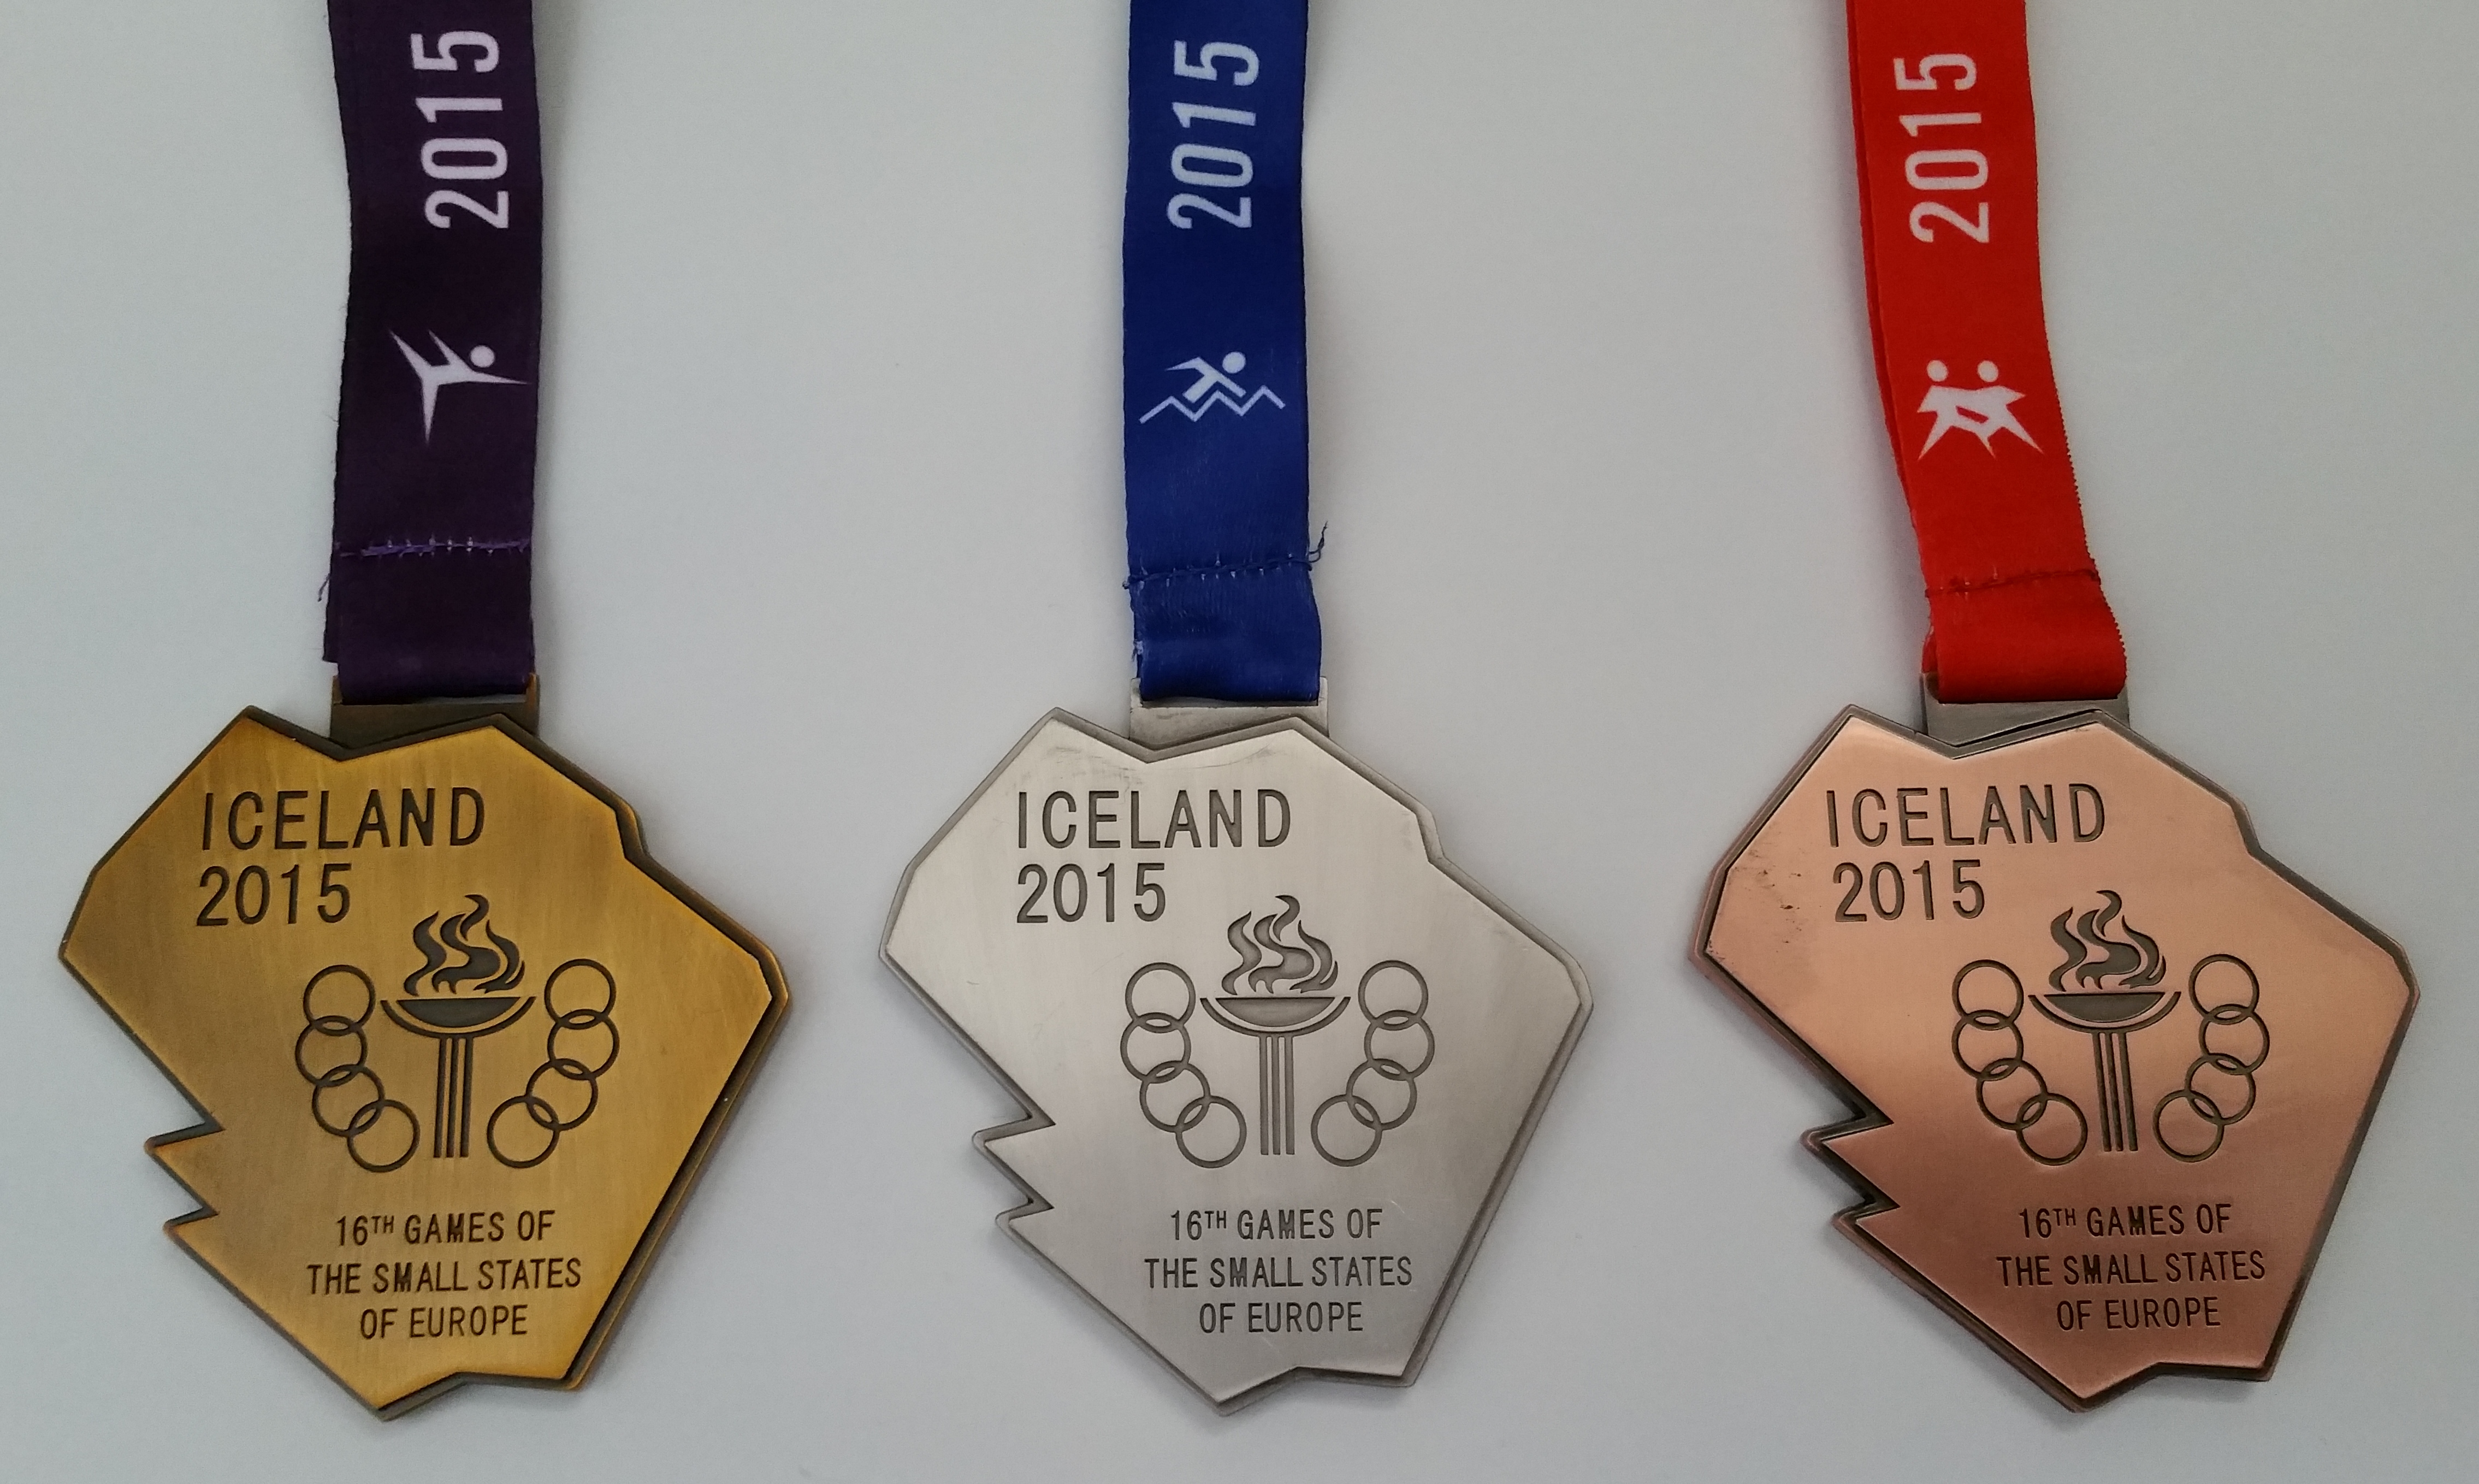 2005 Games of the Small States of Europe